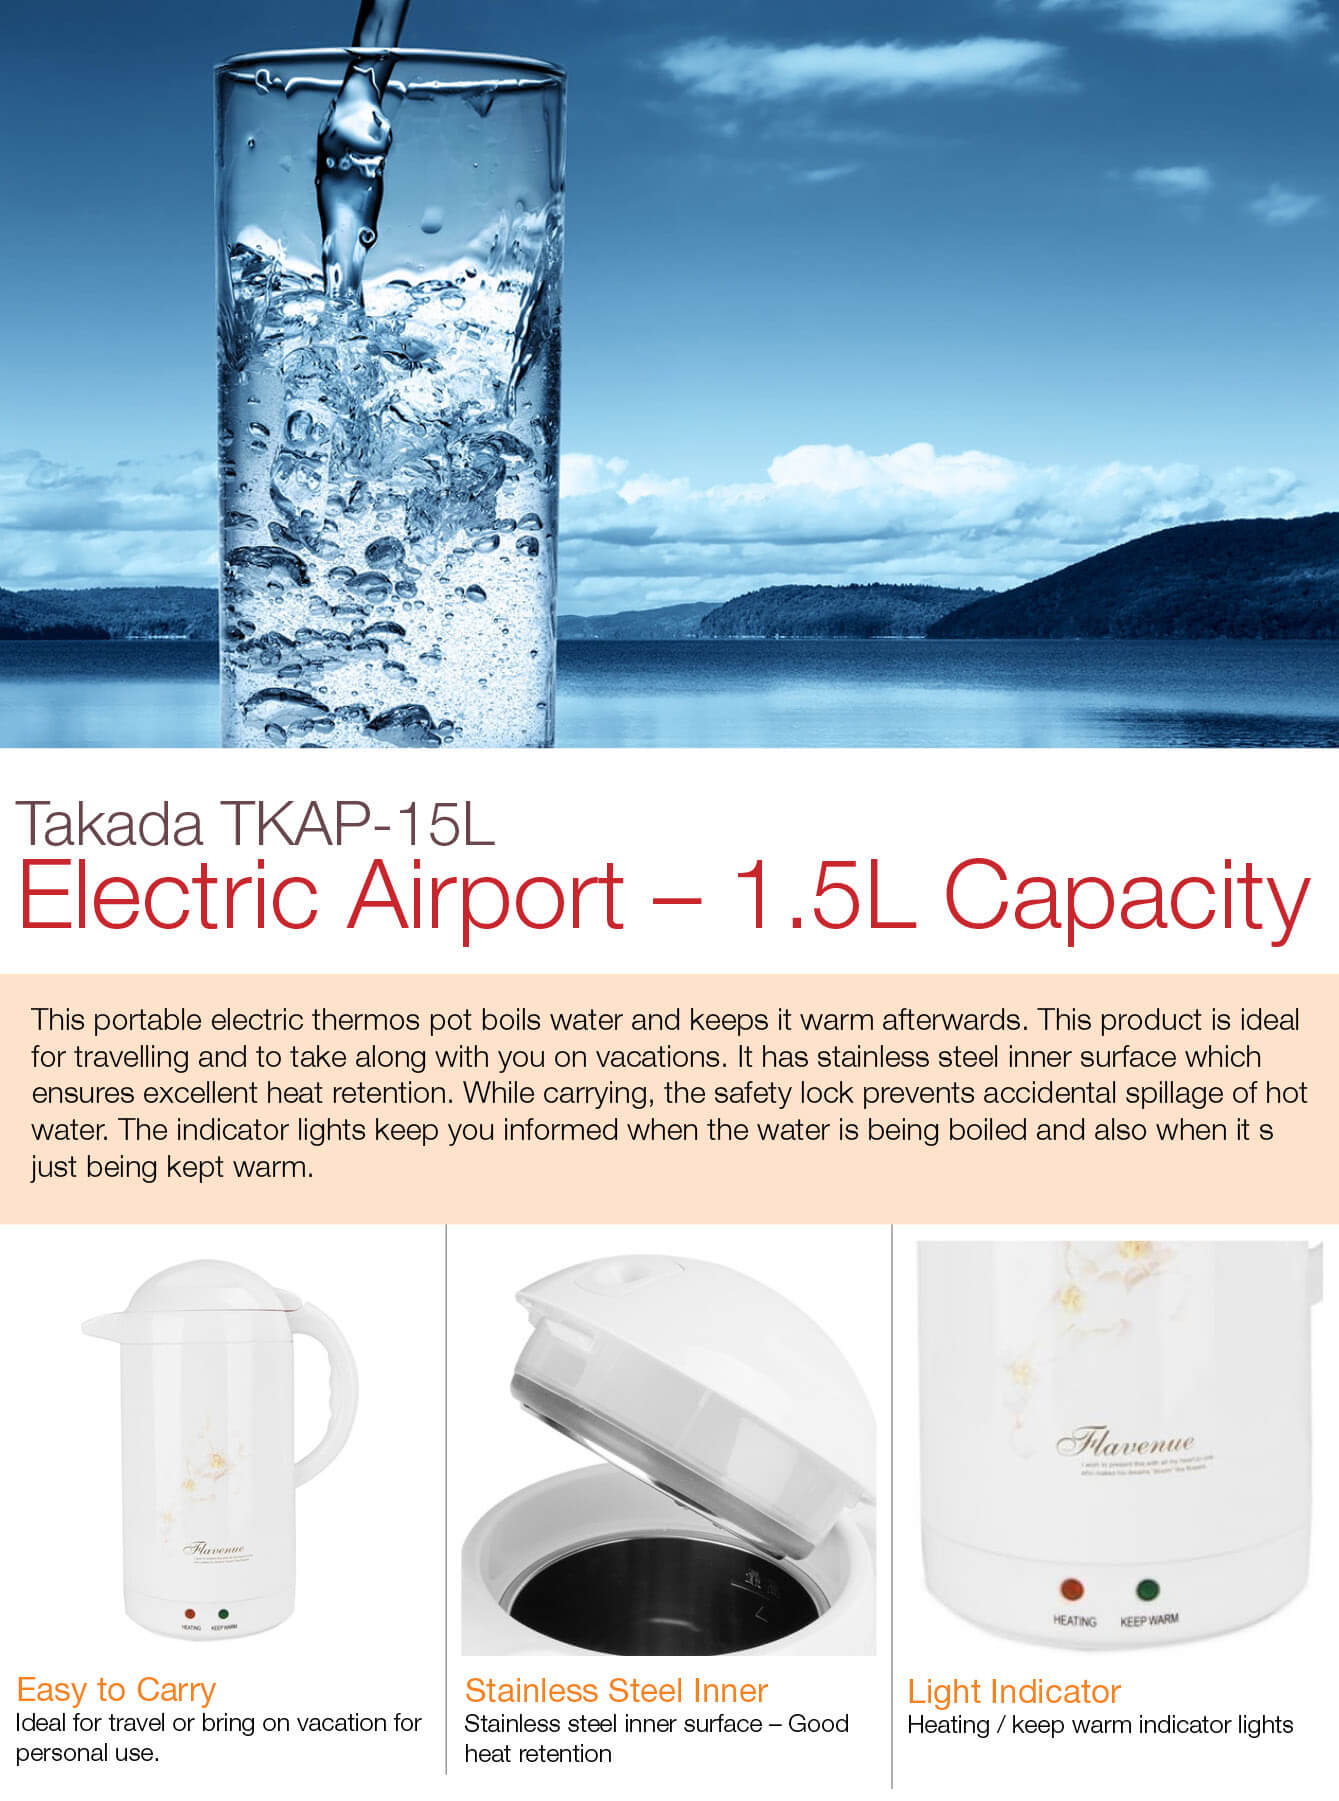 takada-tkap-15L Electric-Airpot-1.5L